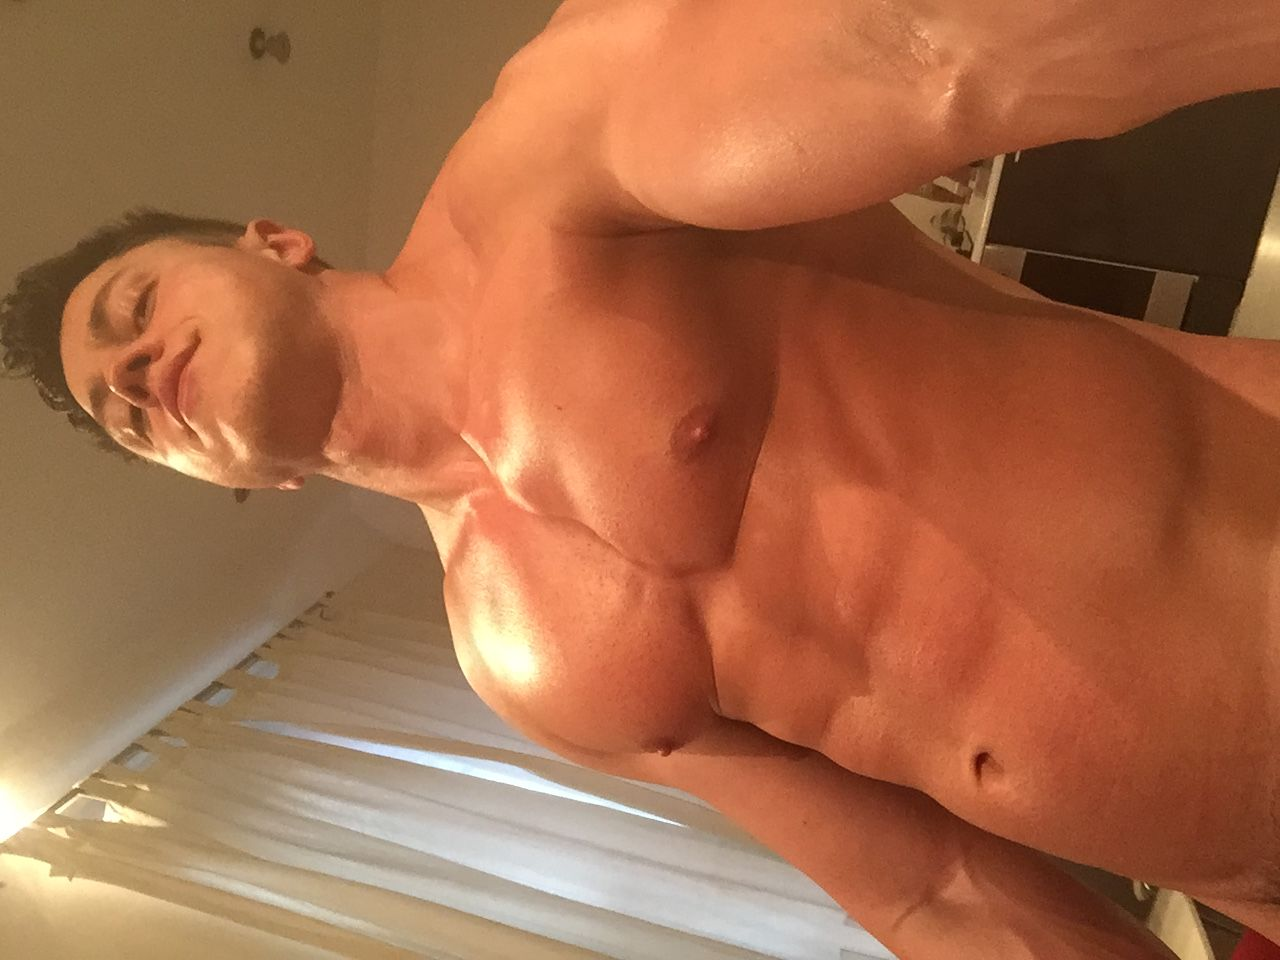 Massaggio tantra gay escort gay brasil